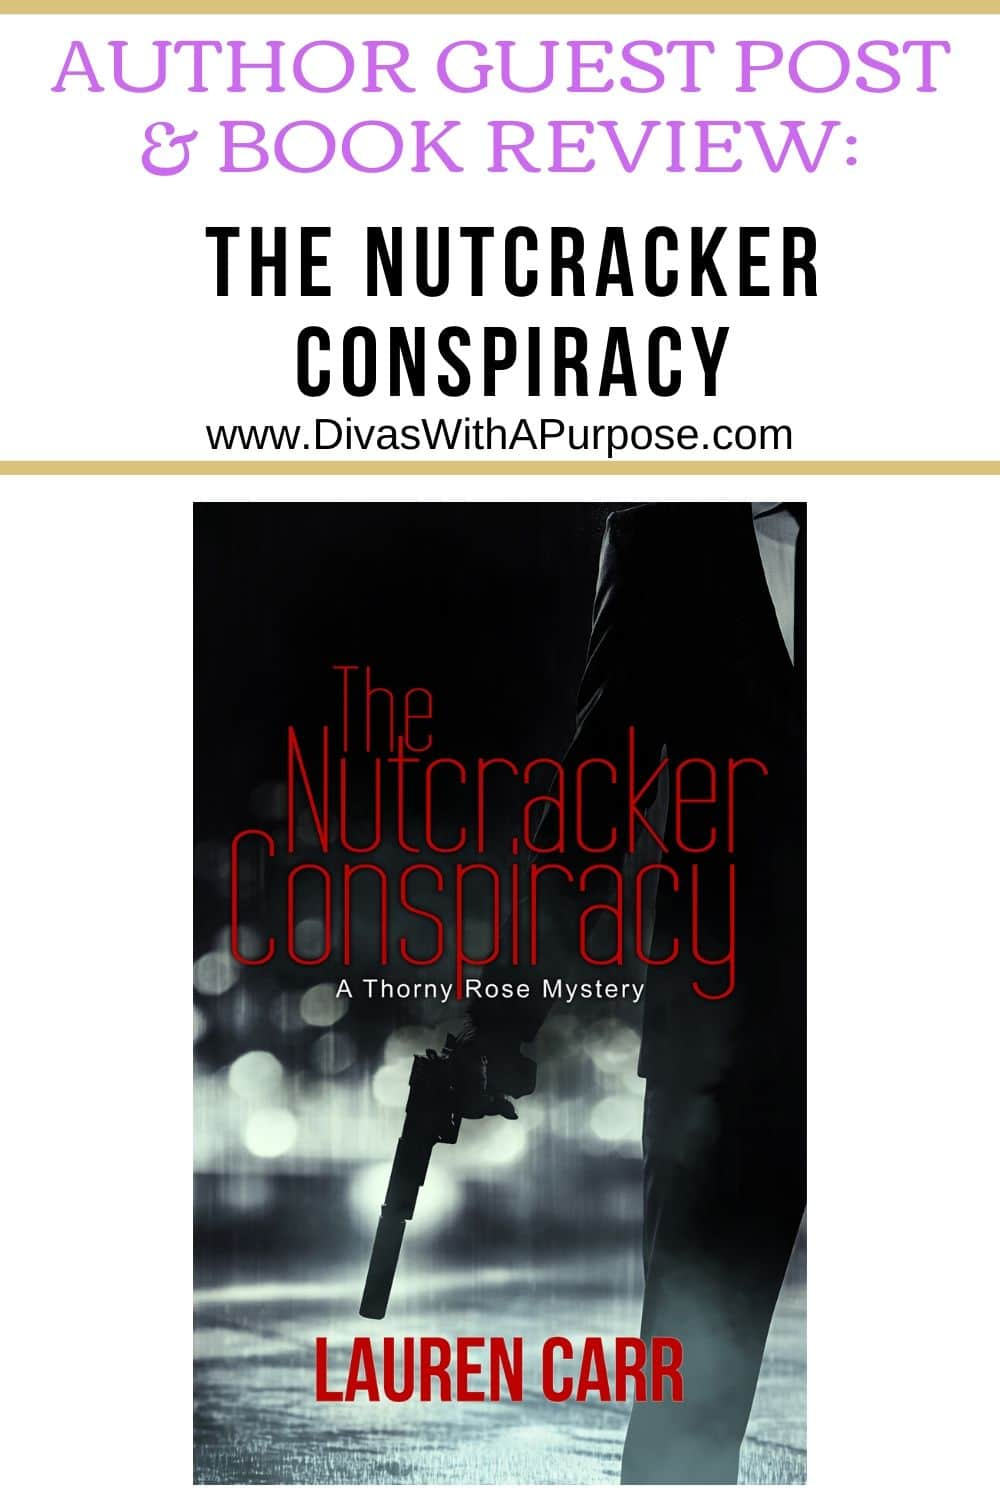 A guest post by the author of The Nutcracker Conspiracy, Lauren Carr. #TheNutcrackerConspiracy #ThornyRoseMystery #NewRelease #mystery #suspense #crimefiction